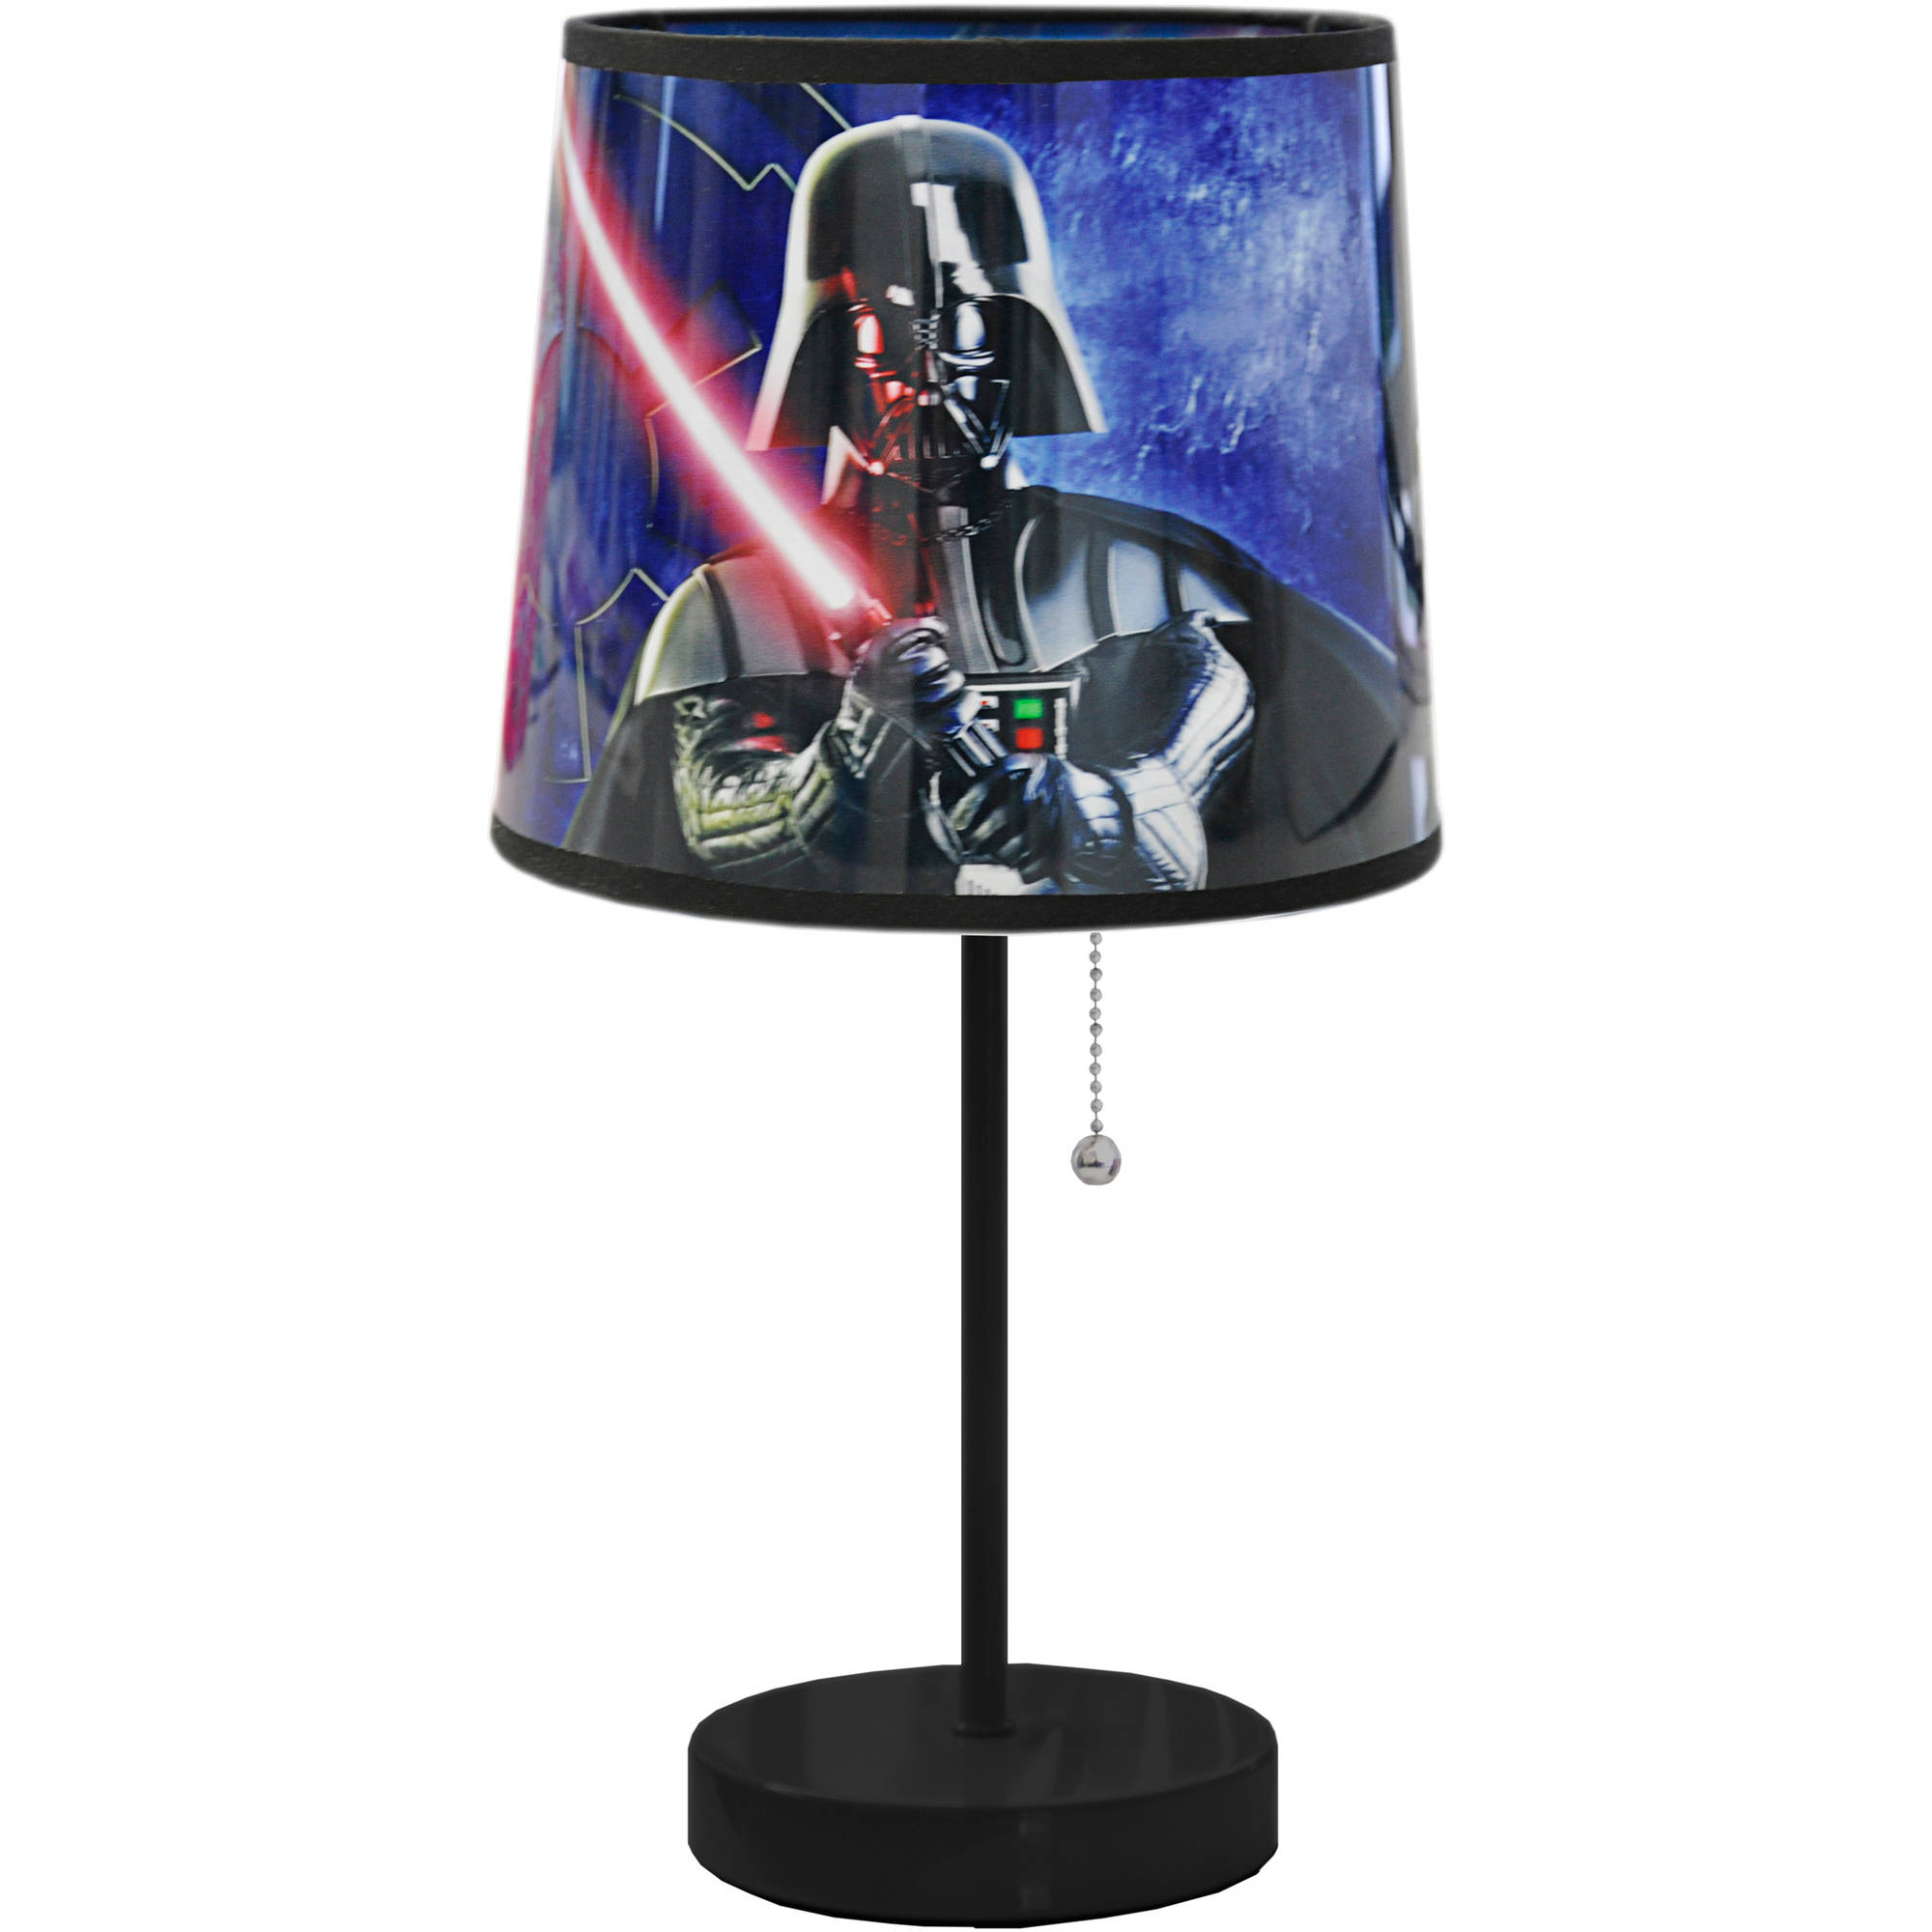 Star Wars Darth Vader Table Lamp   Walmart com. Plug In Track Lighting Walmart. Home Design Ideas